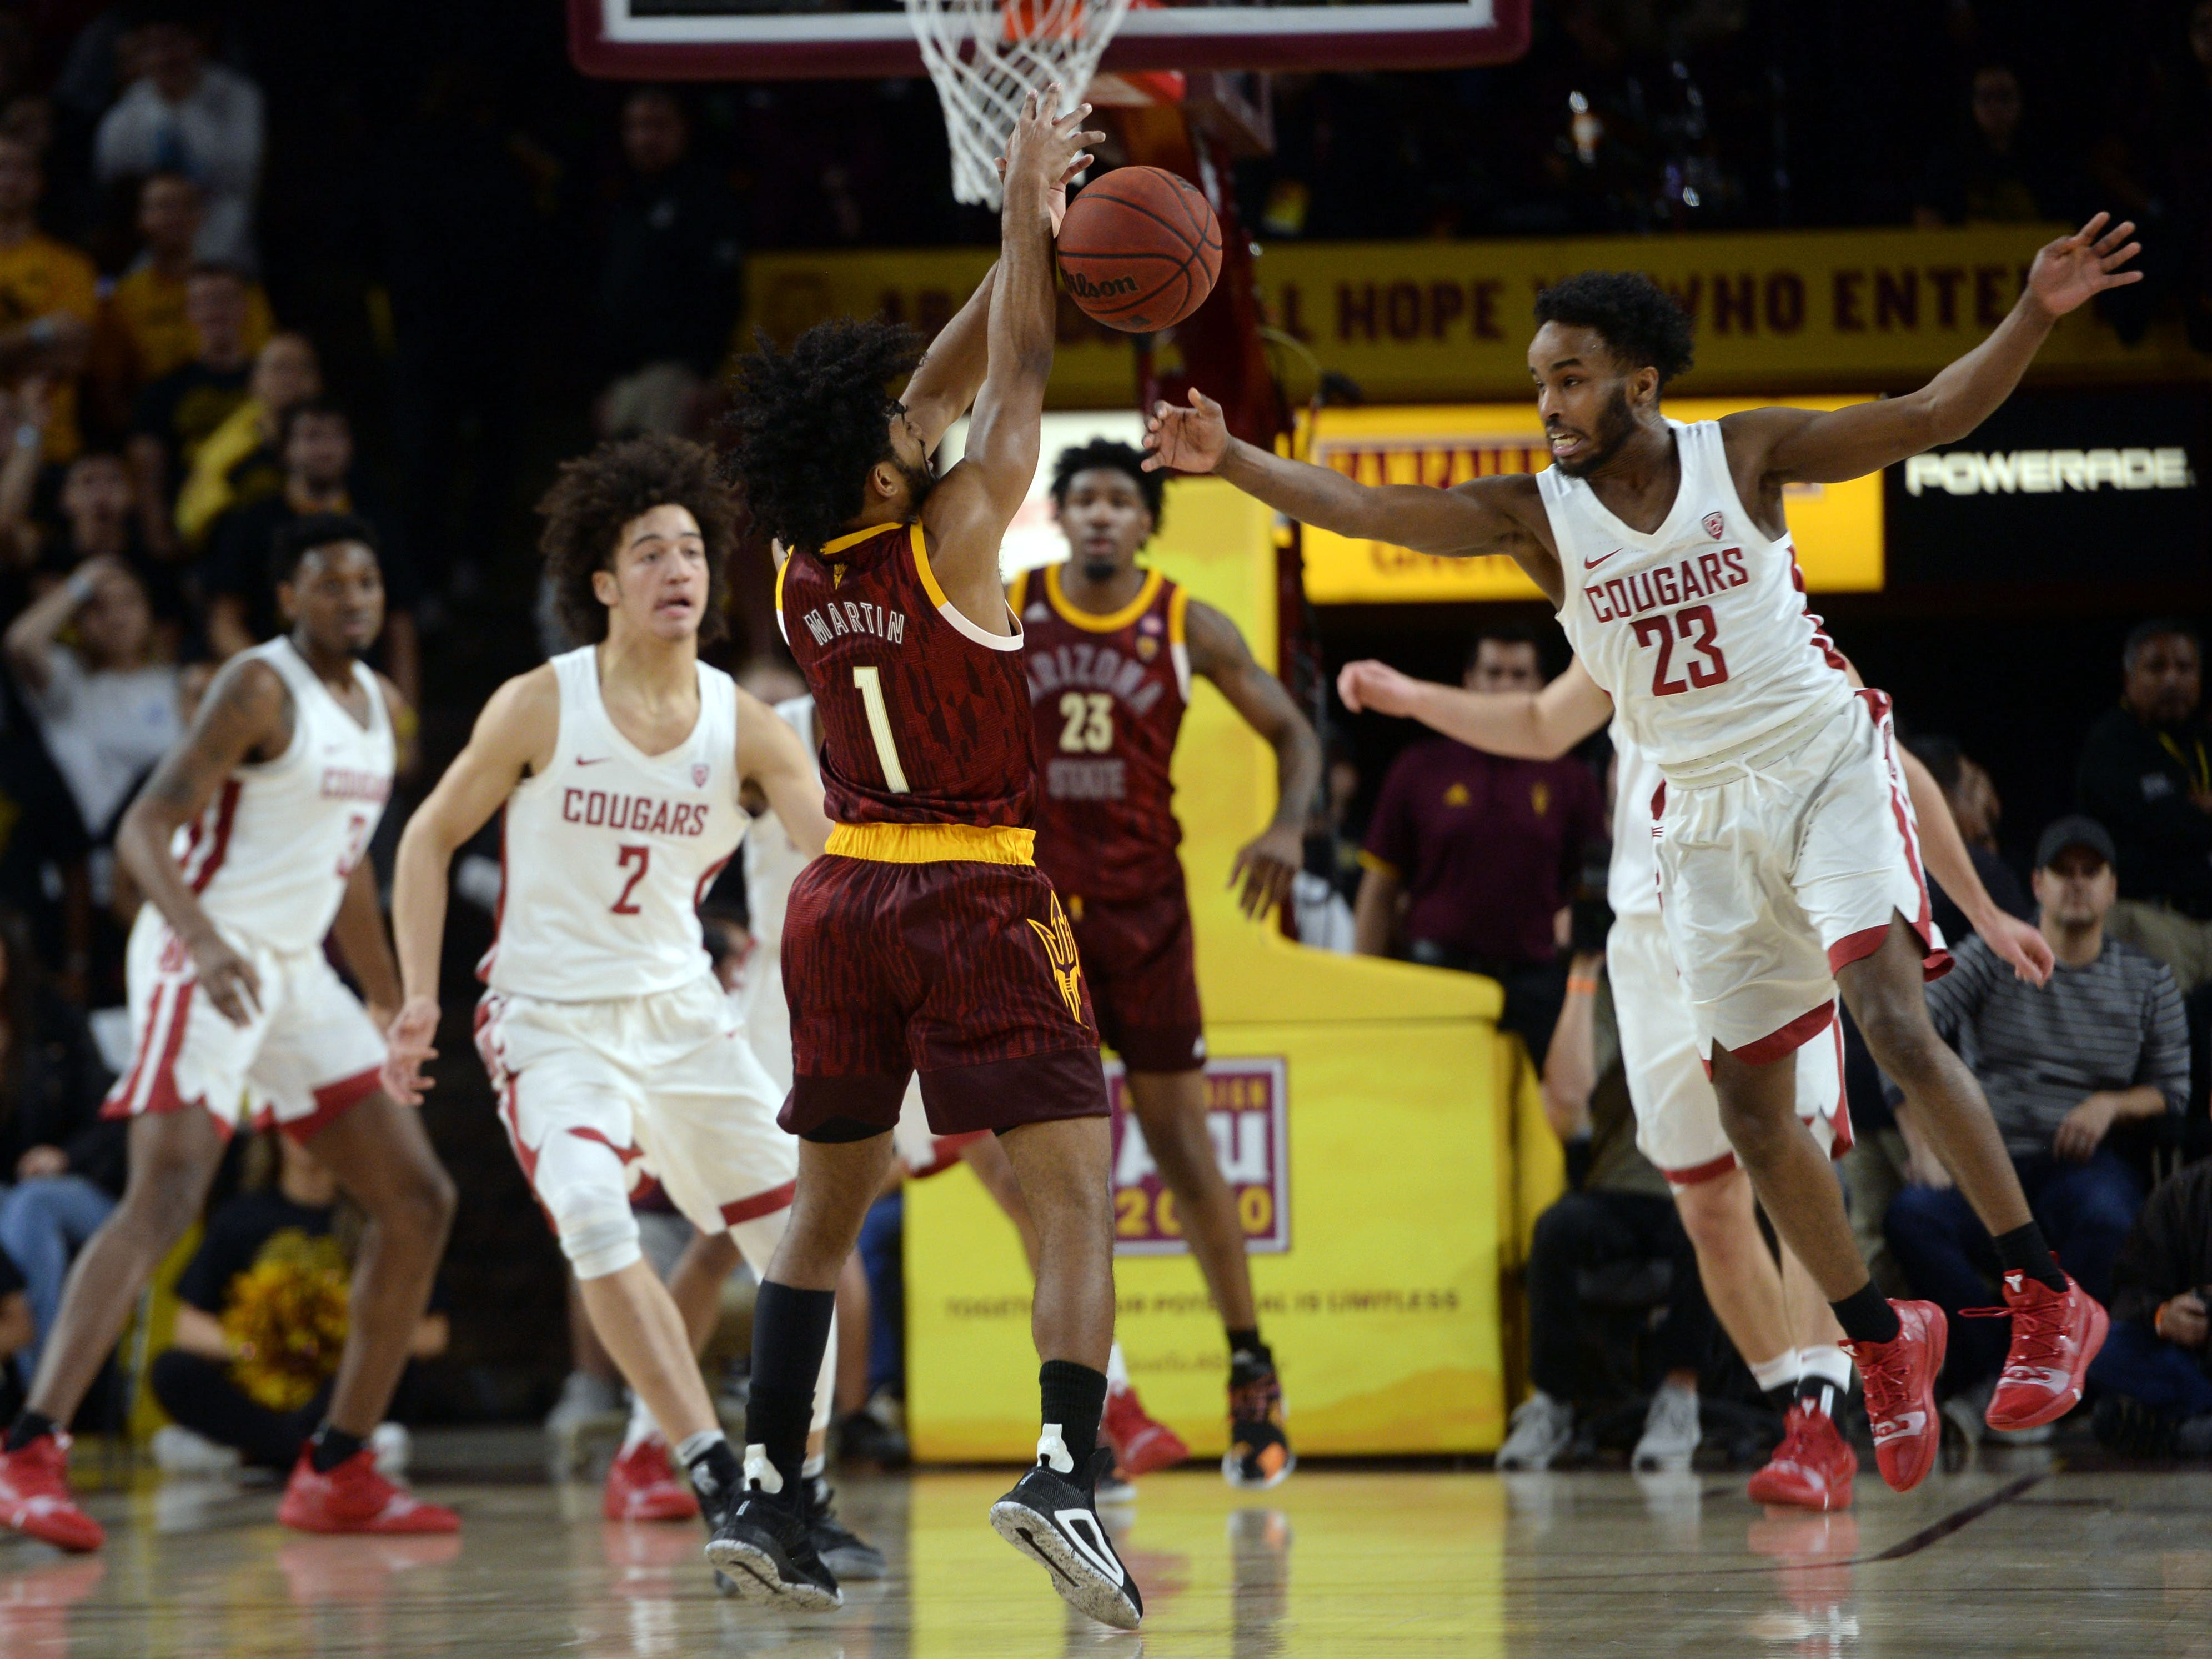 Feb 7, 2019; Tempe, AZ, USA; Washington State Cougars guard Ahmed Ali (23) pokes the ball away from Arizona State Sun Devils guard Remy Martin (1) during the first half at Wells Fargo Arena (AZ).